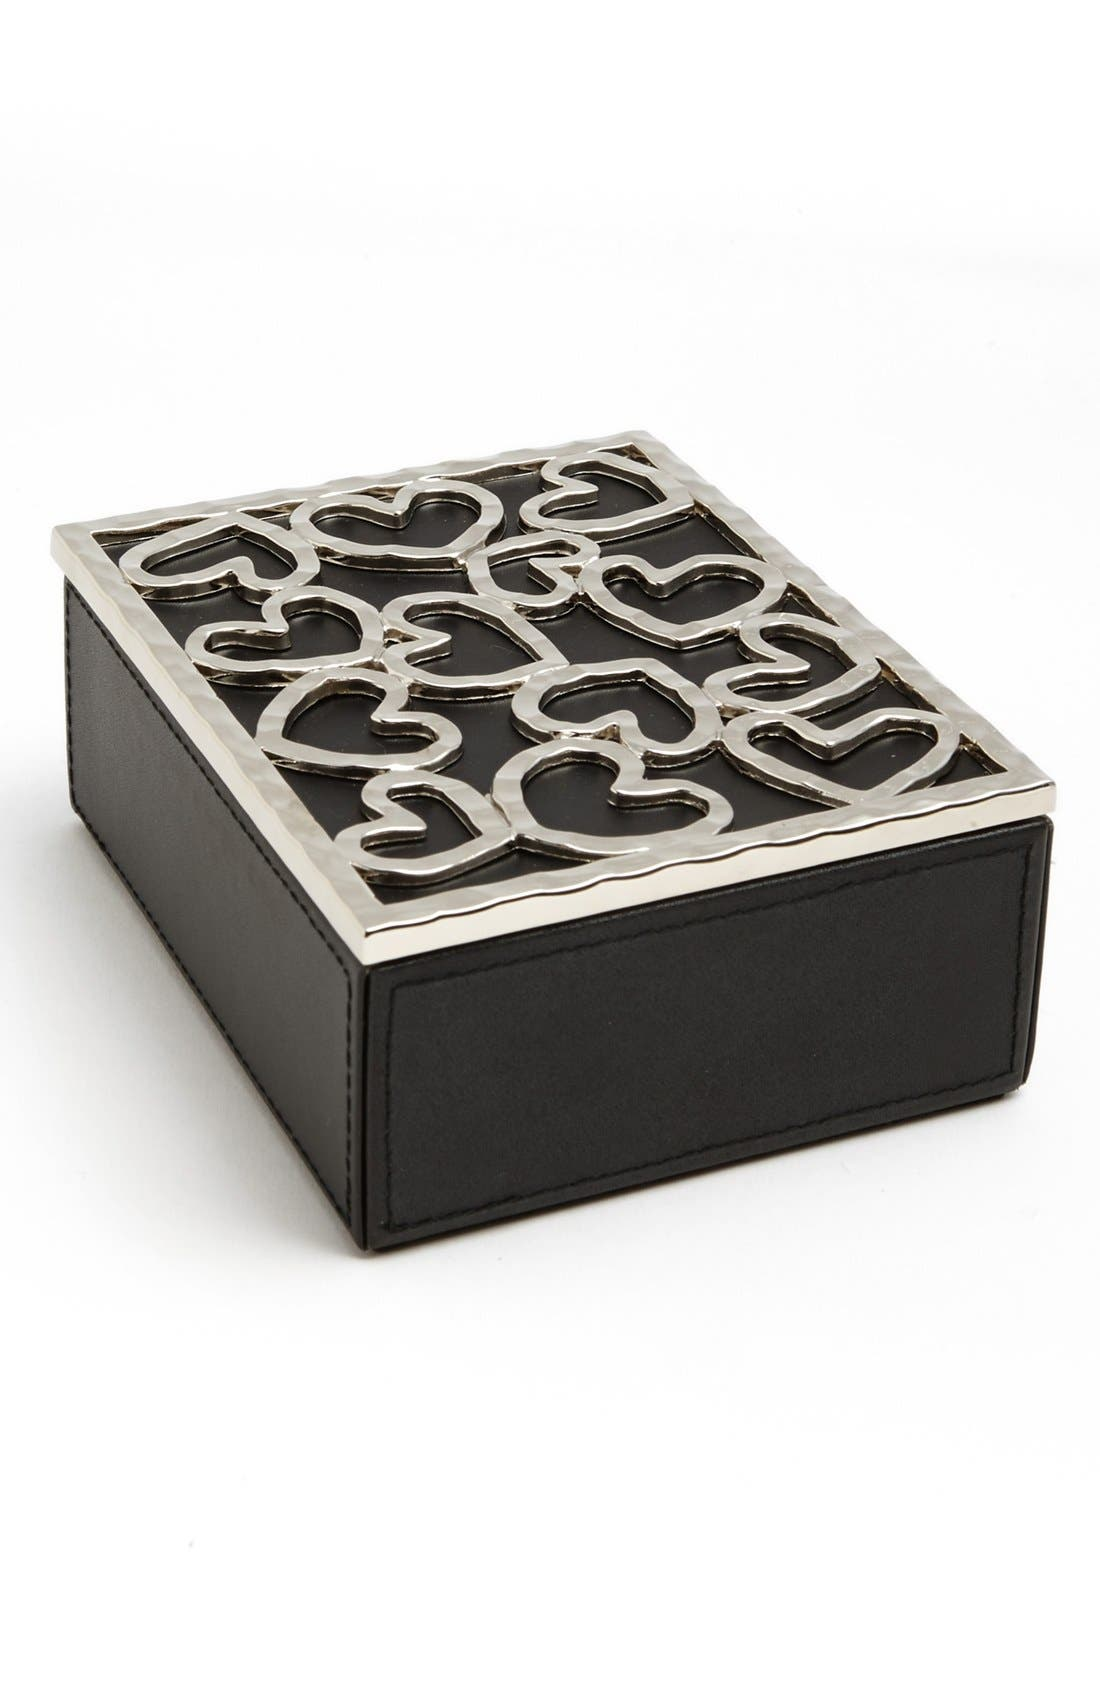 Alternate Image 2  - Michael Aram 'Heart' Jewelry Box